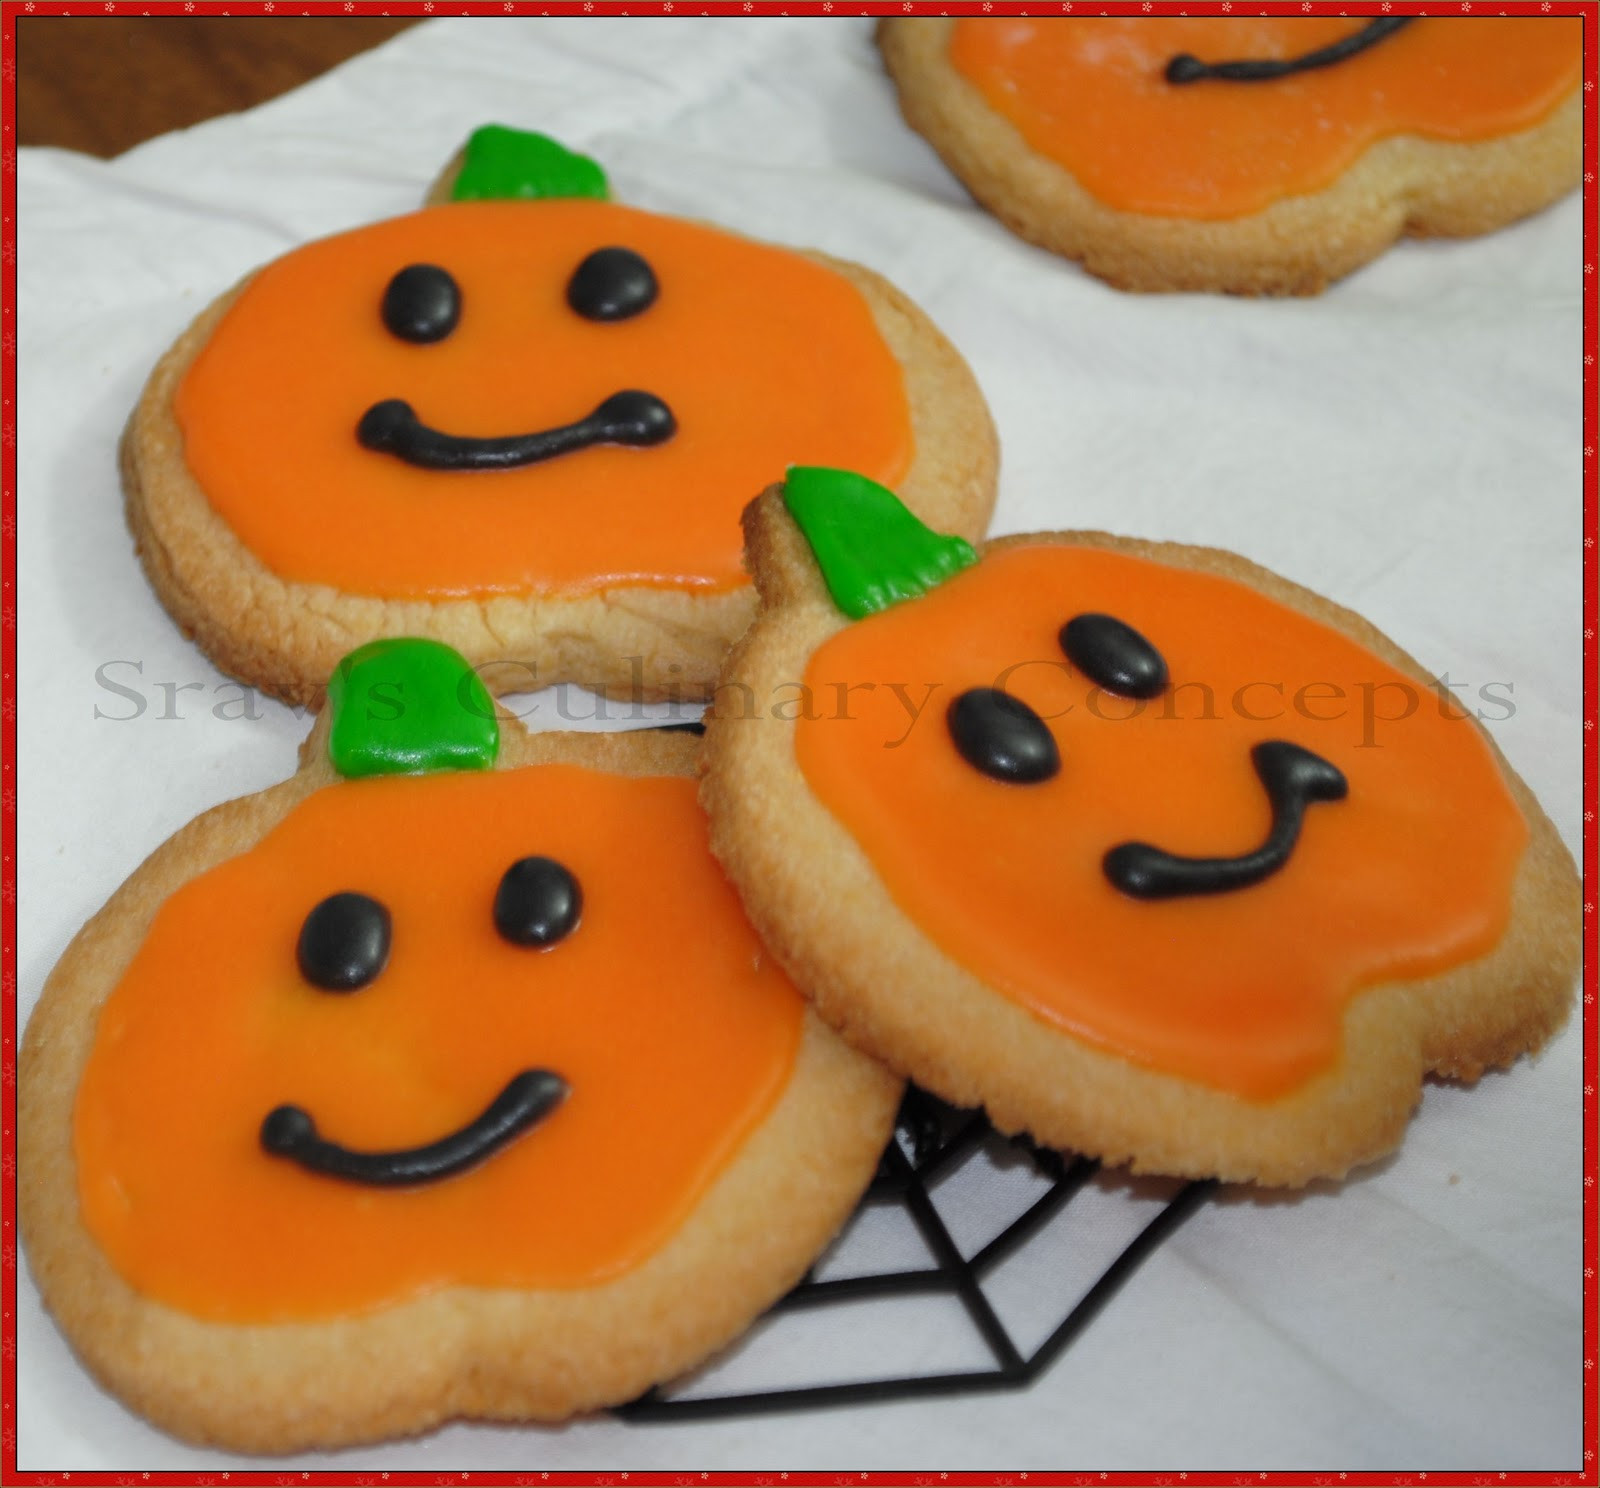 Halloween Sugar Cookies  Srav s Culinary Concepts Halloween Sugar Cookies with